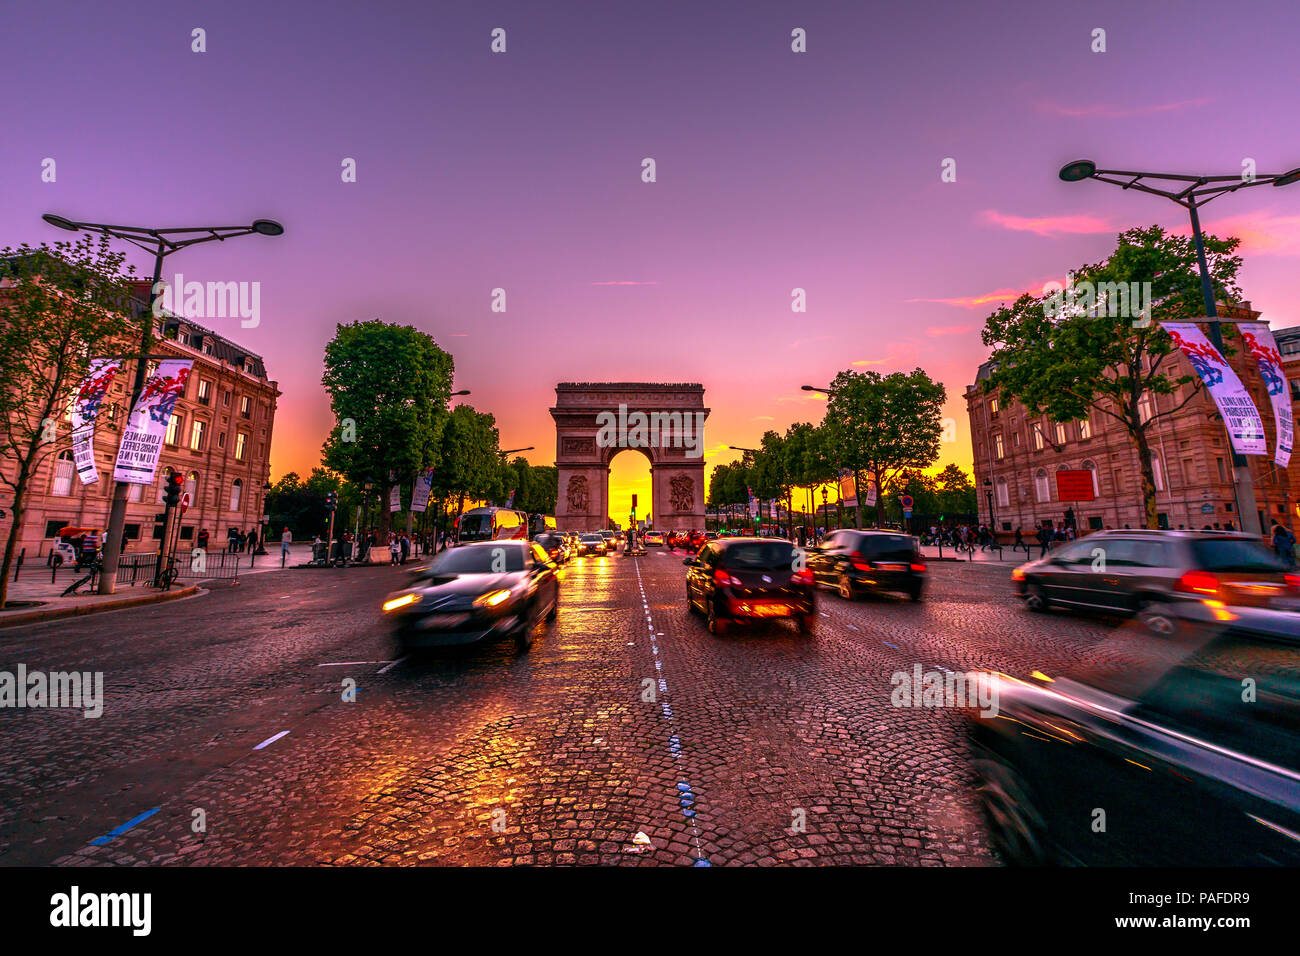 Paris, France - July 2, 2017: Avenue des Champs Elysees and iconic Arc de Triomphe at twilight with traffic street. Arch of Triumph in a colorful sunset sky. - Stock Image